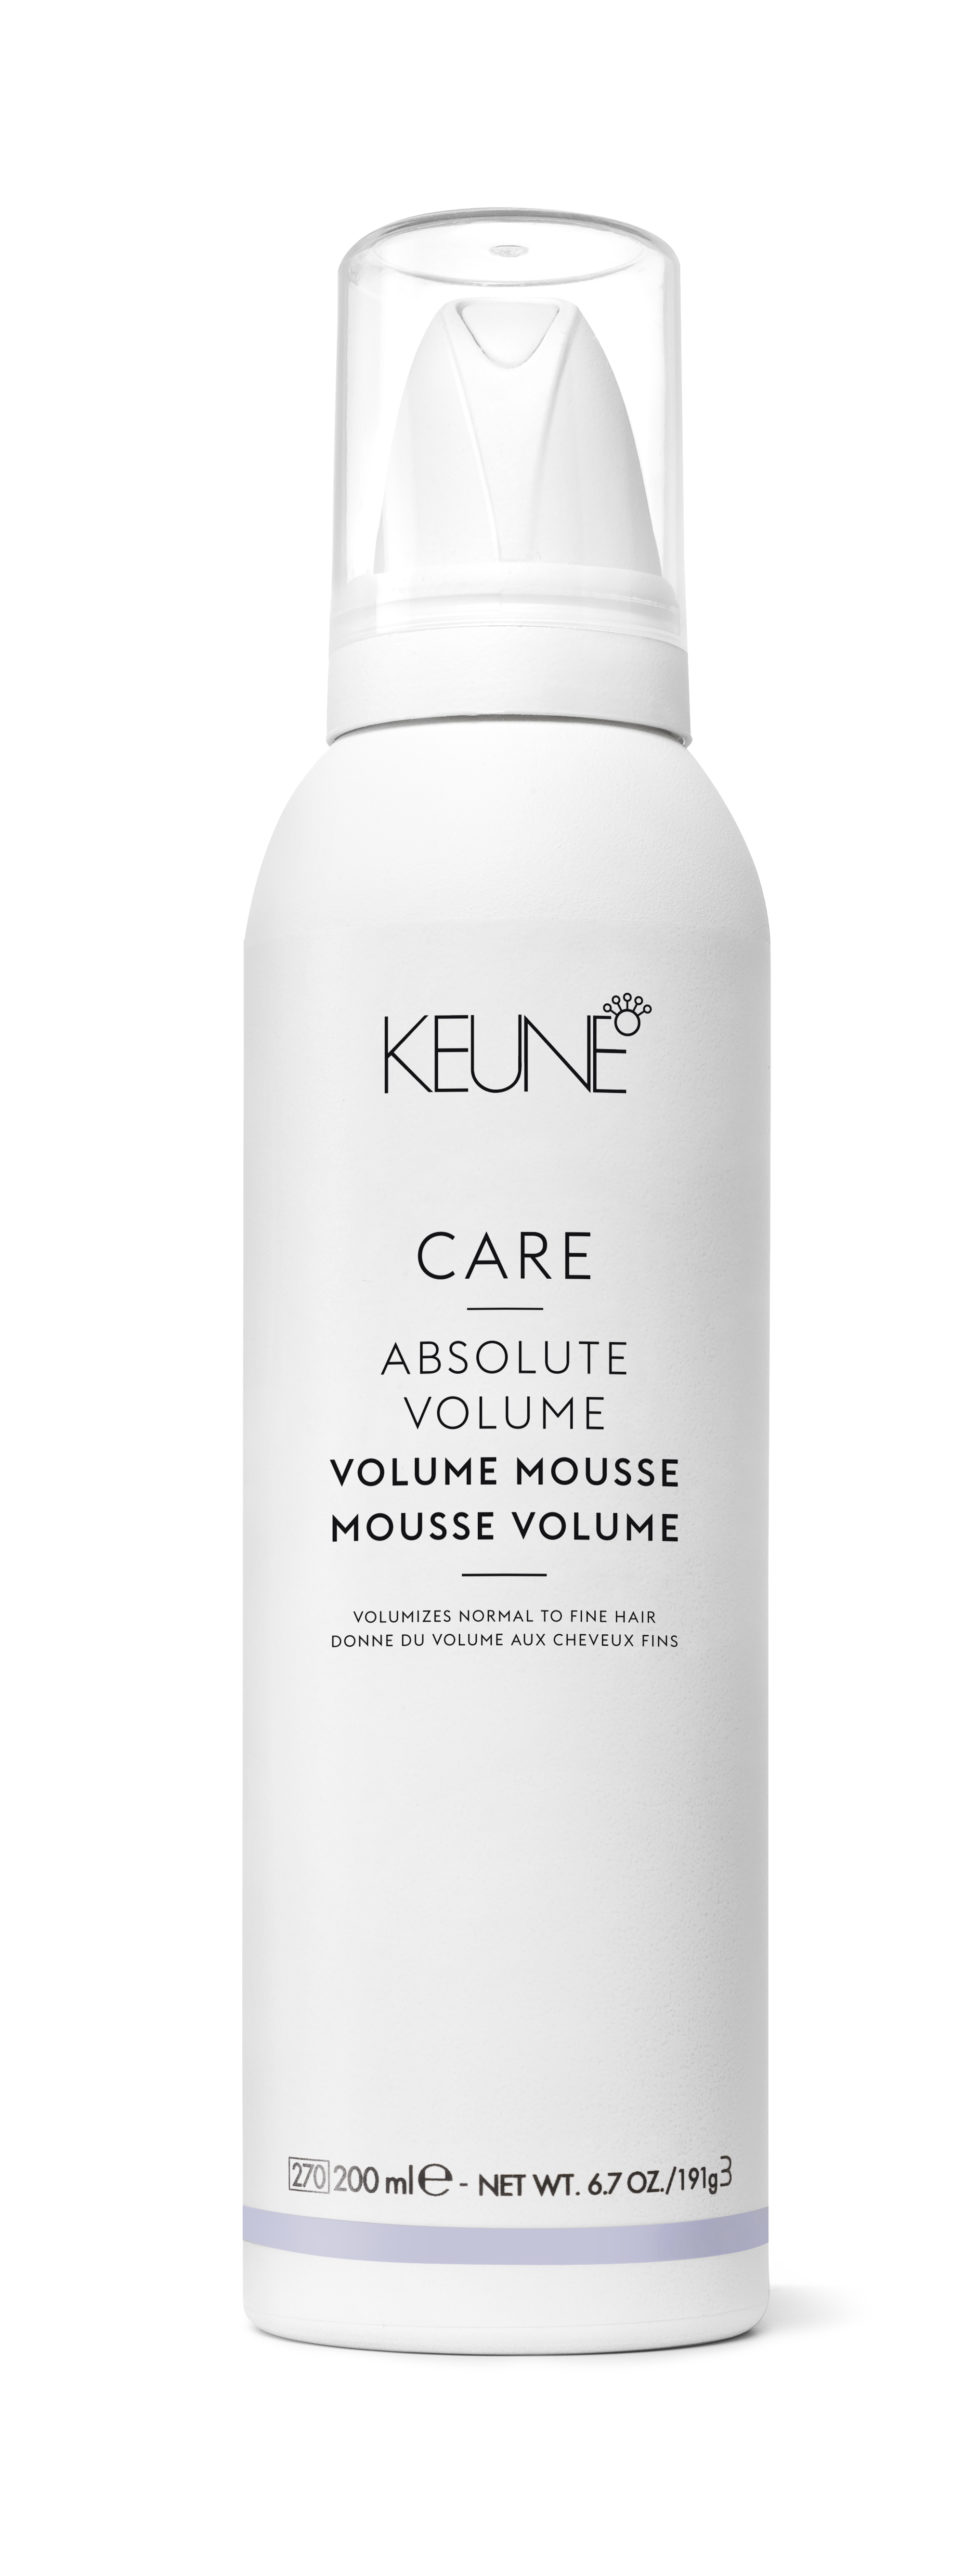 Care-Absolute-Volume-Mousse-200ml-Highres